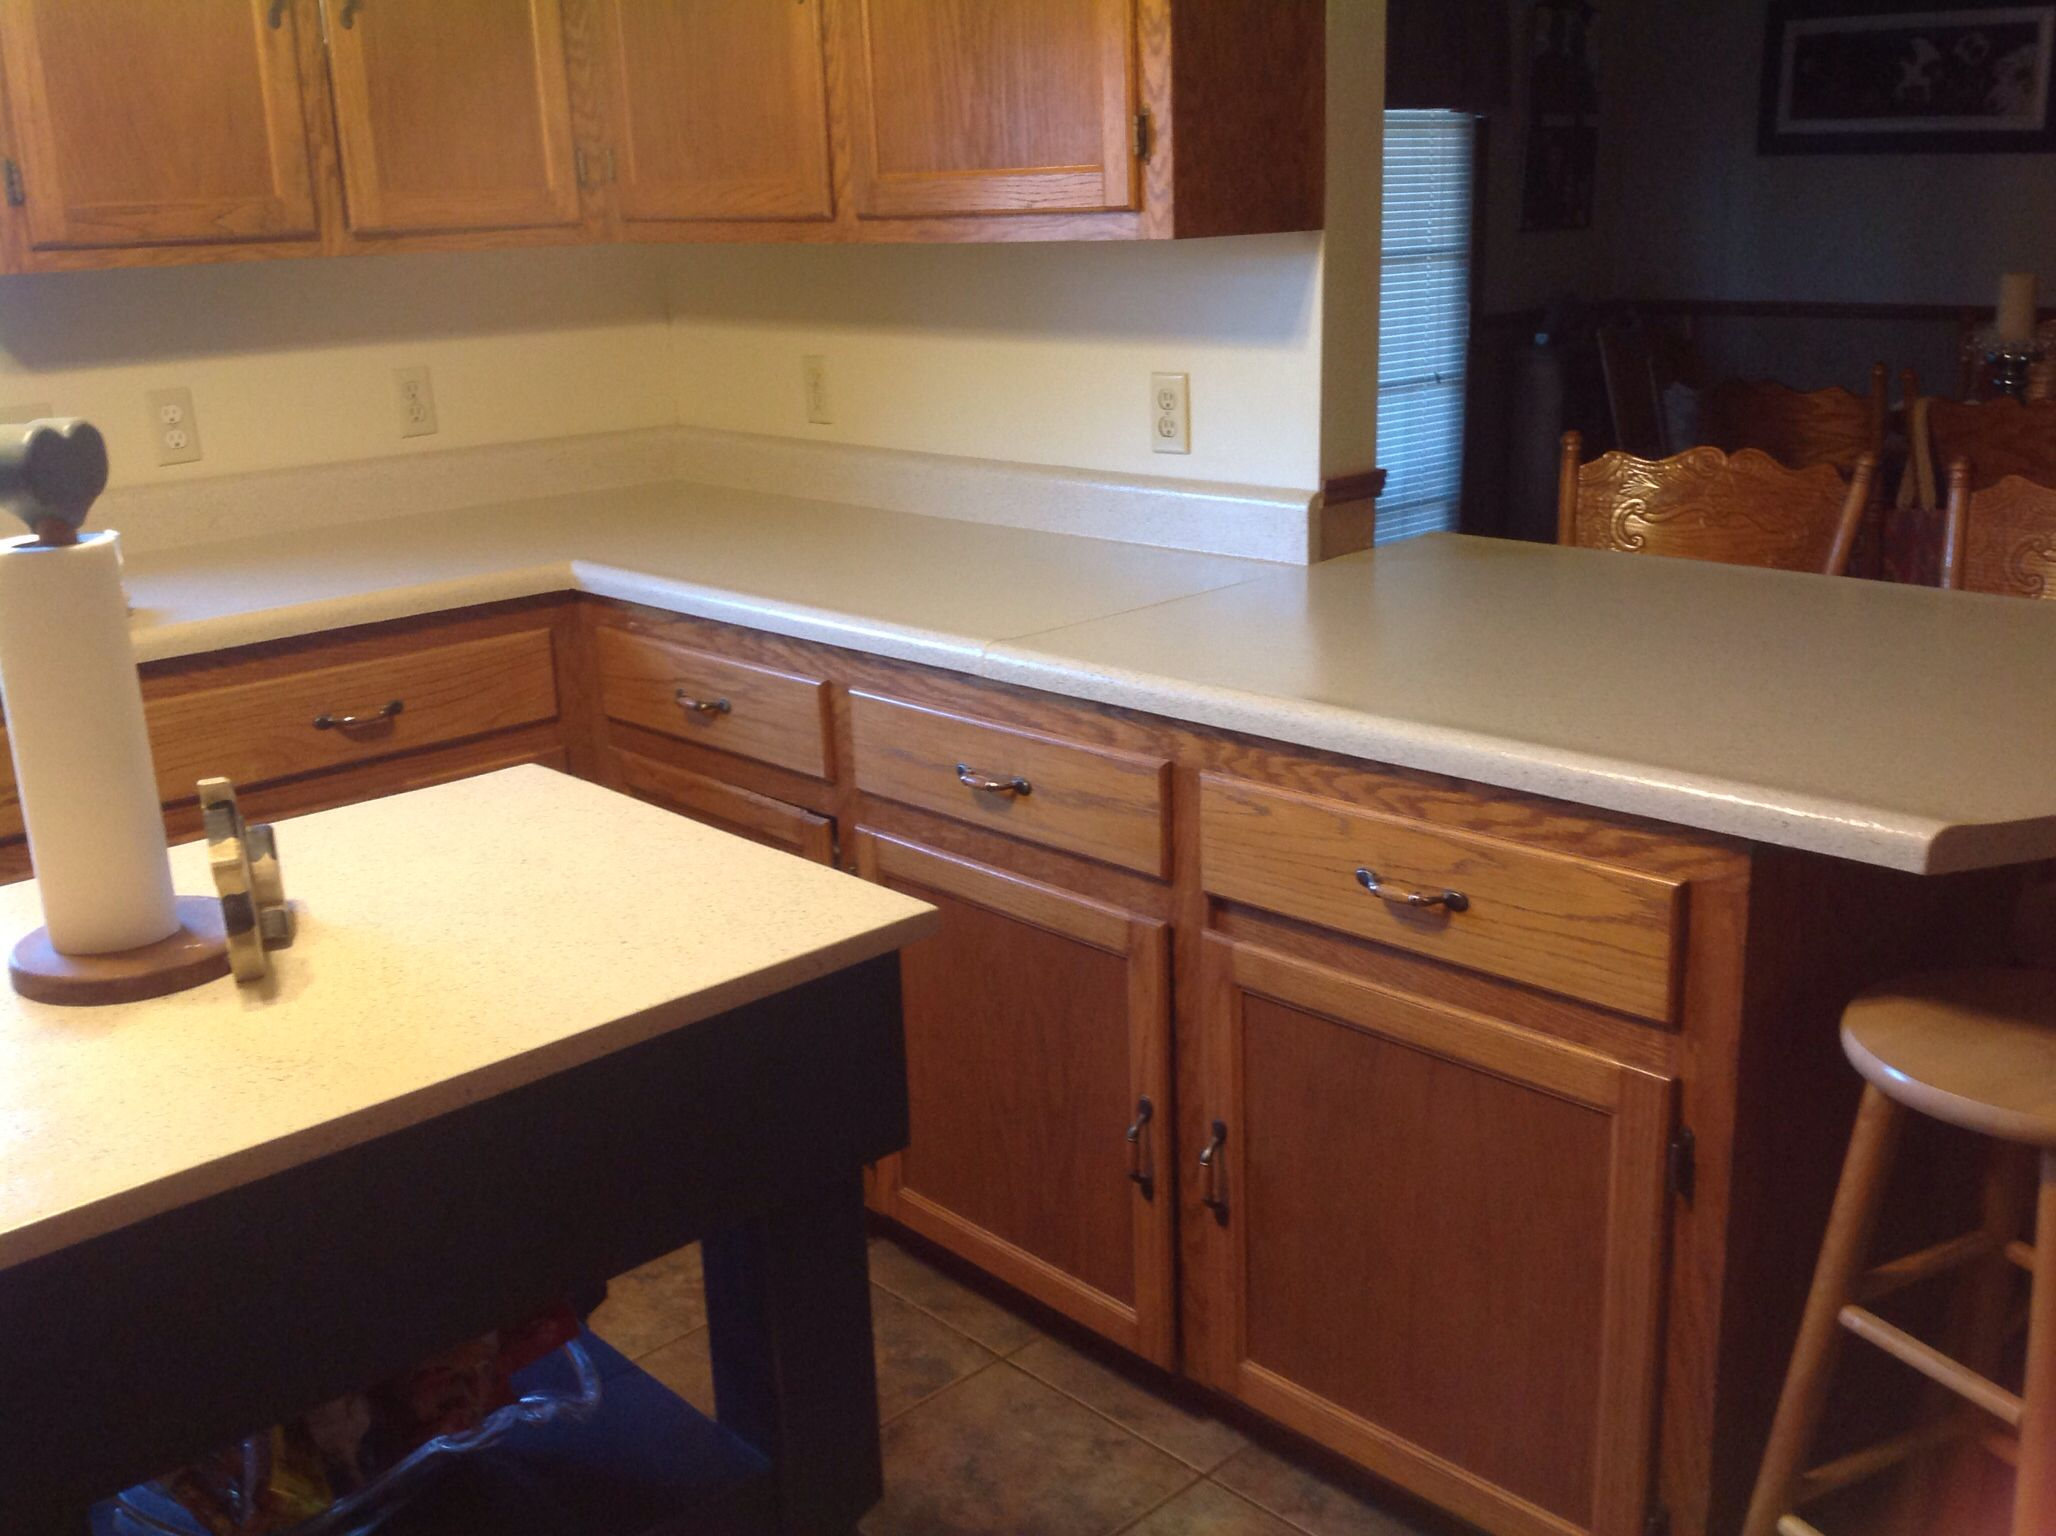 Daich Spreadstone Countertop Daich Spreadstone Countertop In Ivory Over Old